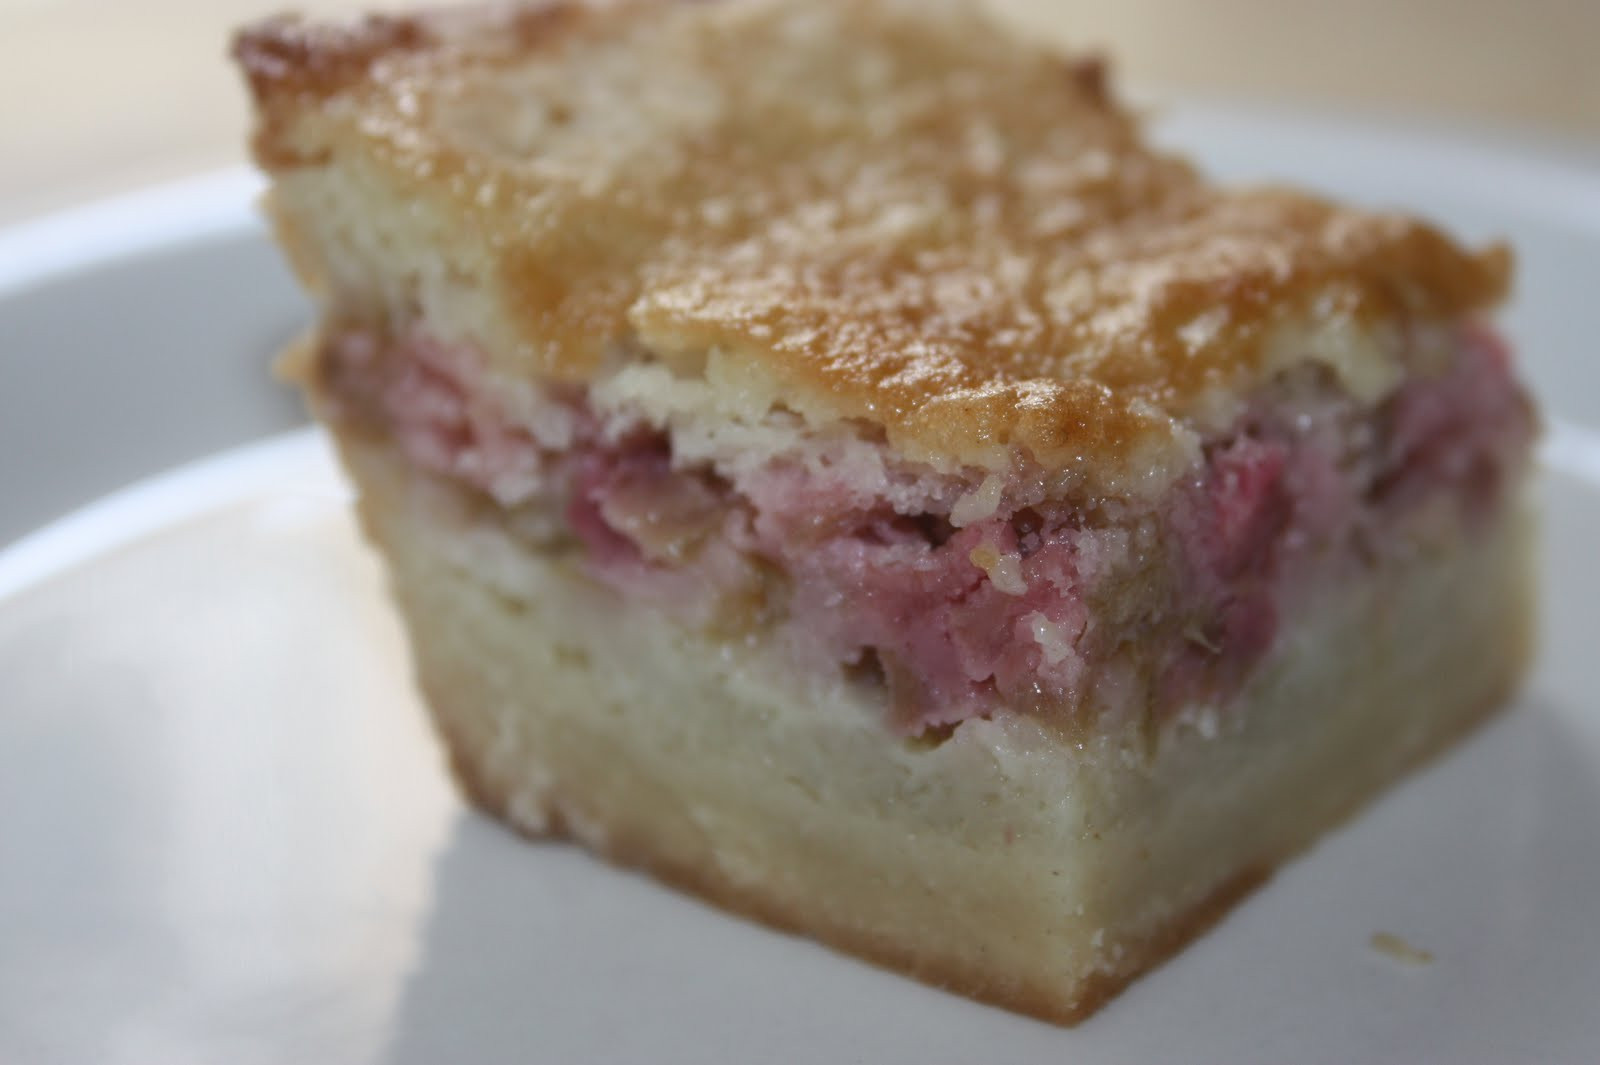 Rhubarb Dessert Recipes  The Found Recipe Box Making the Rounds with Rhubarb